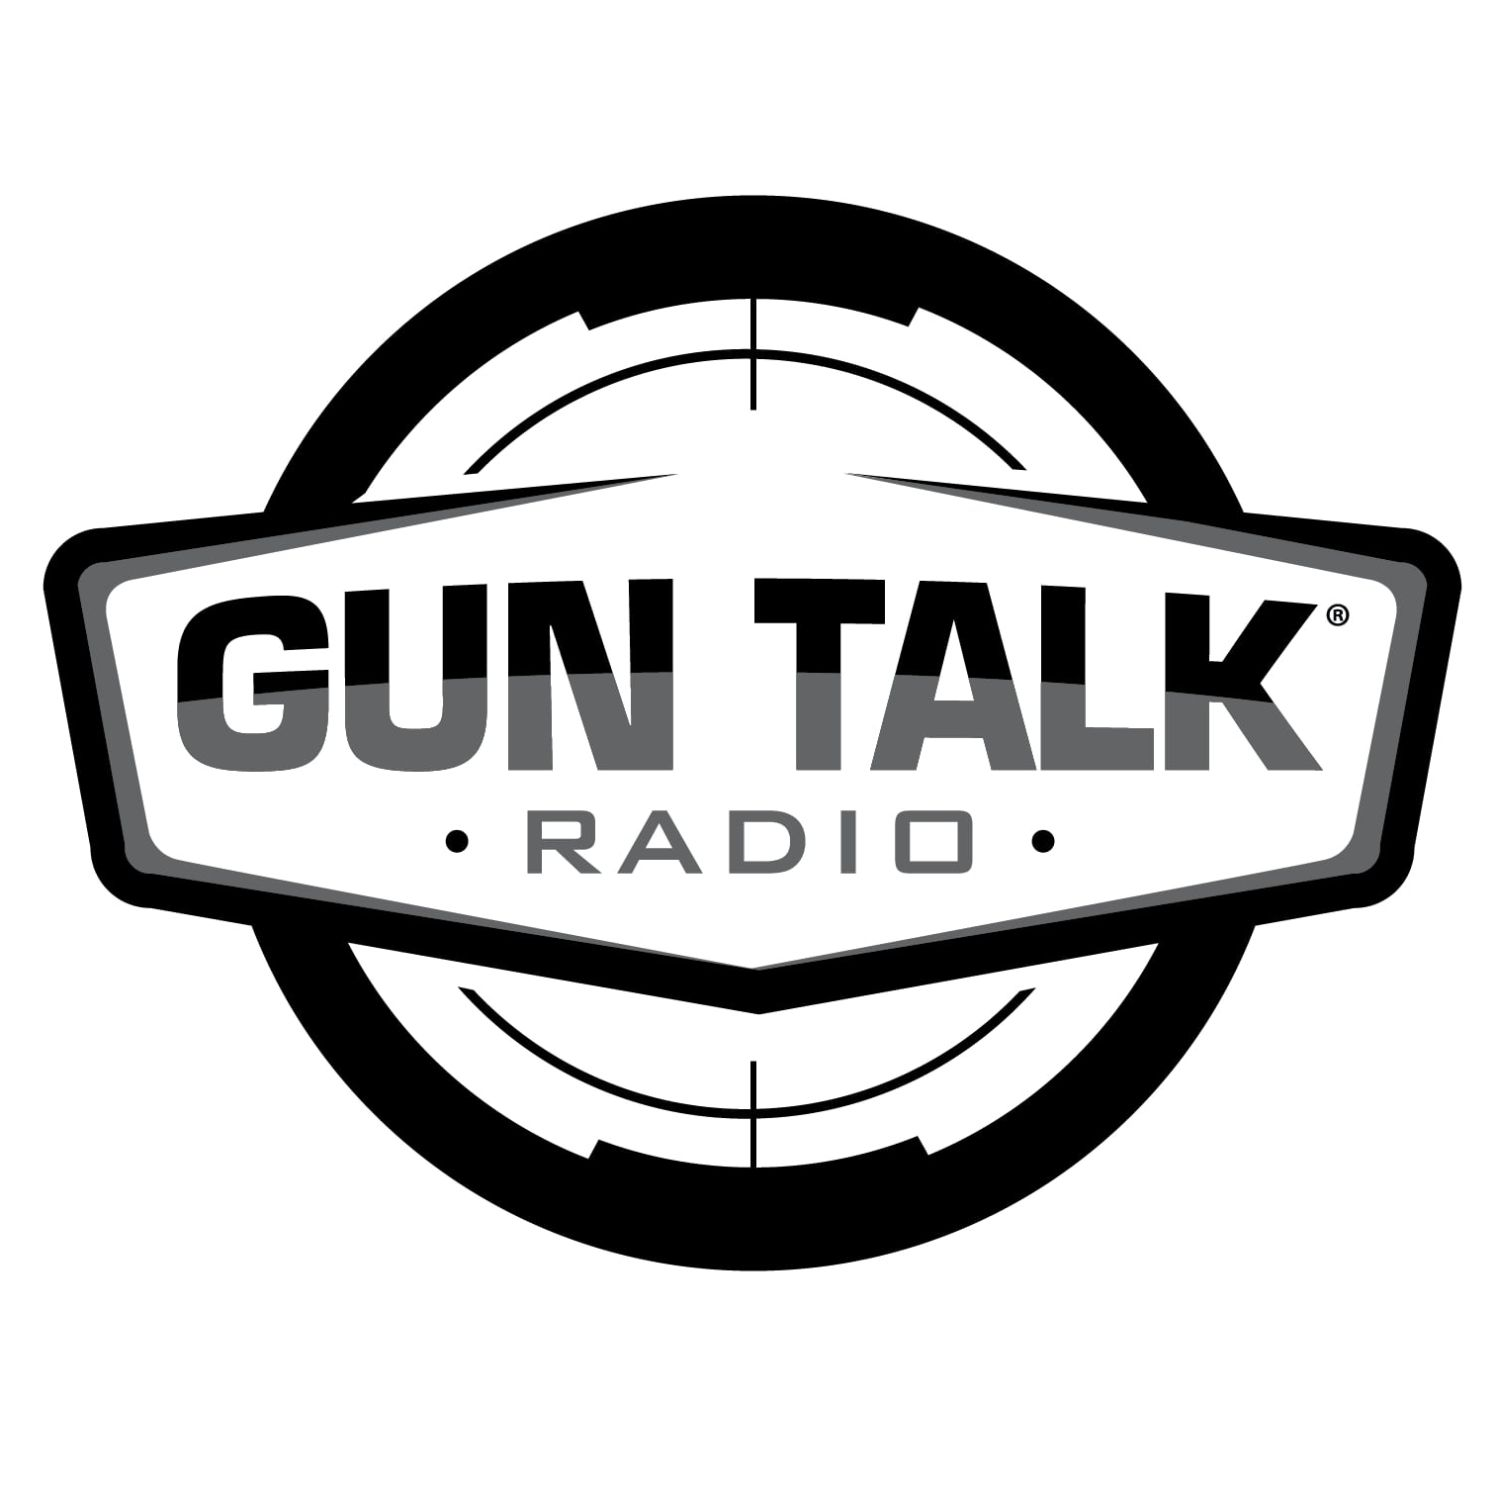 Artwork for Guntalk 2007-09-23 Part A